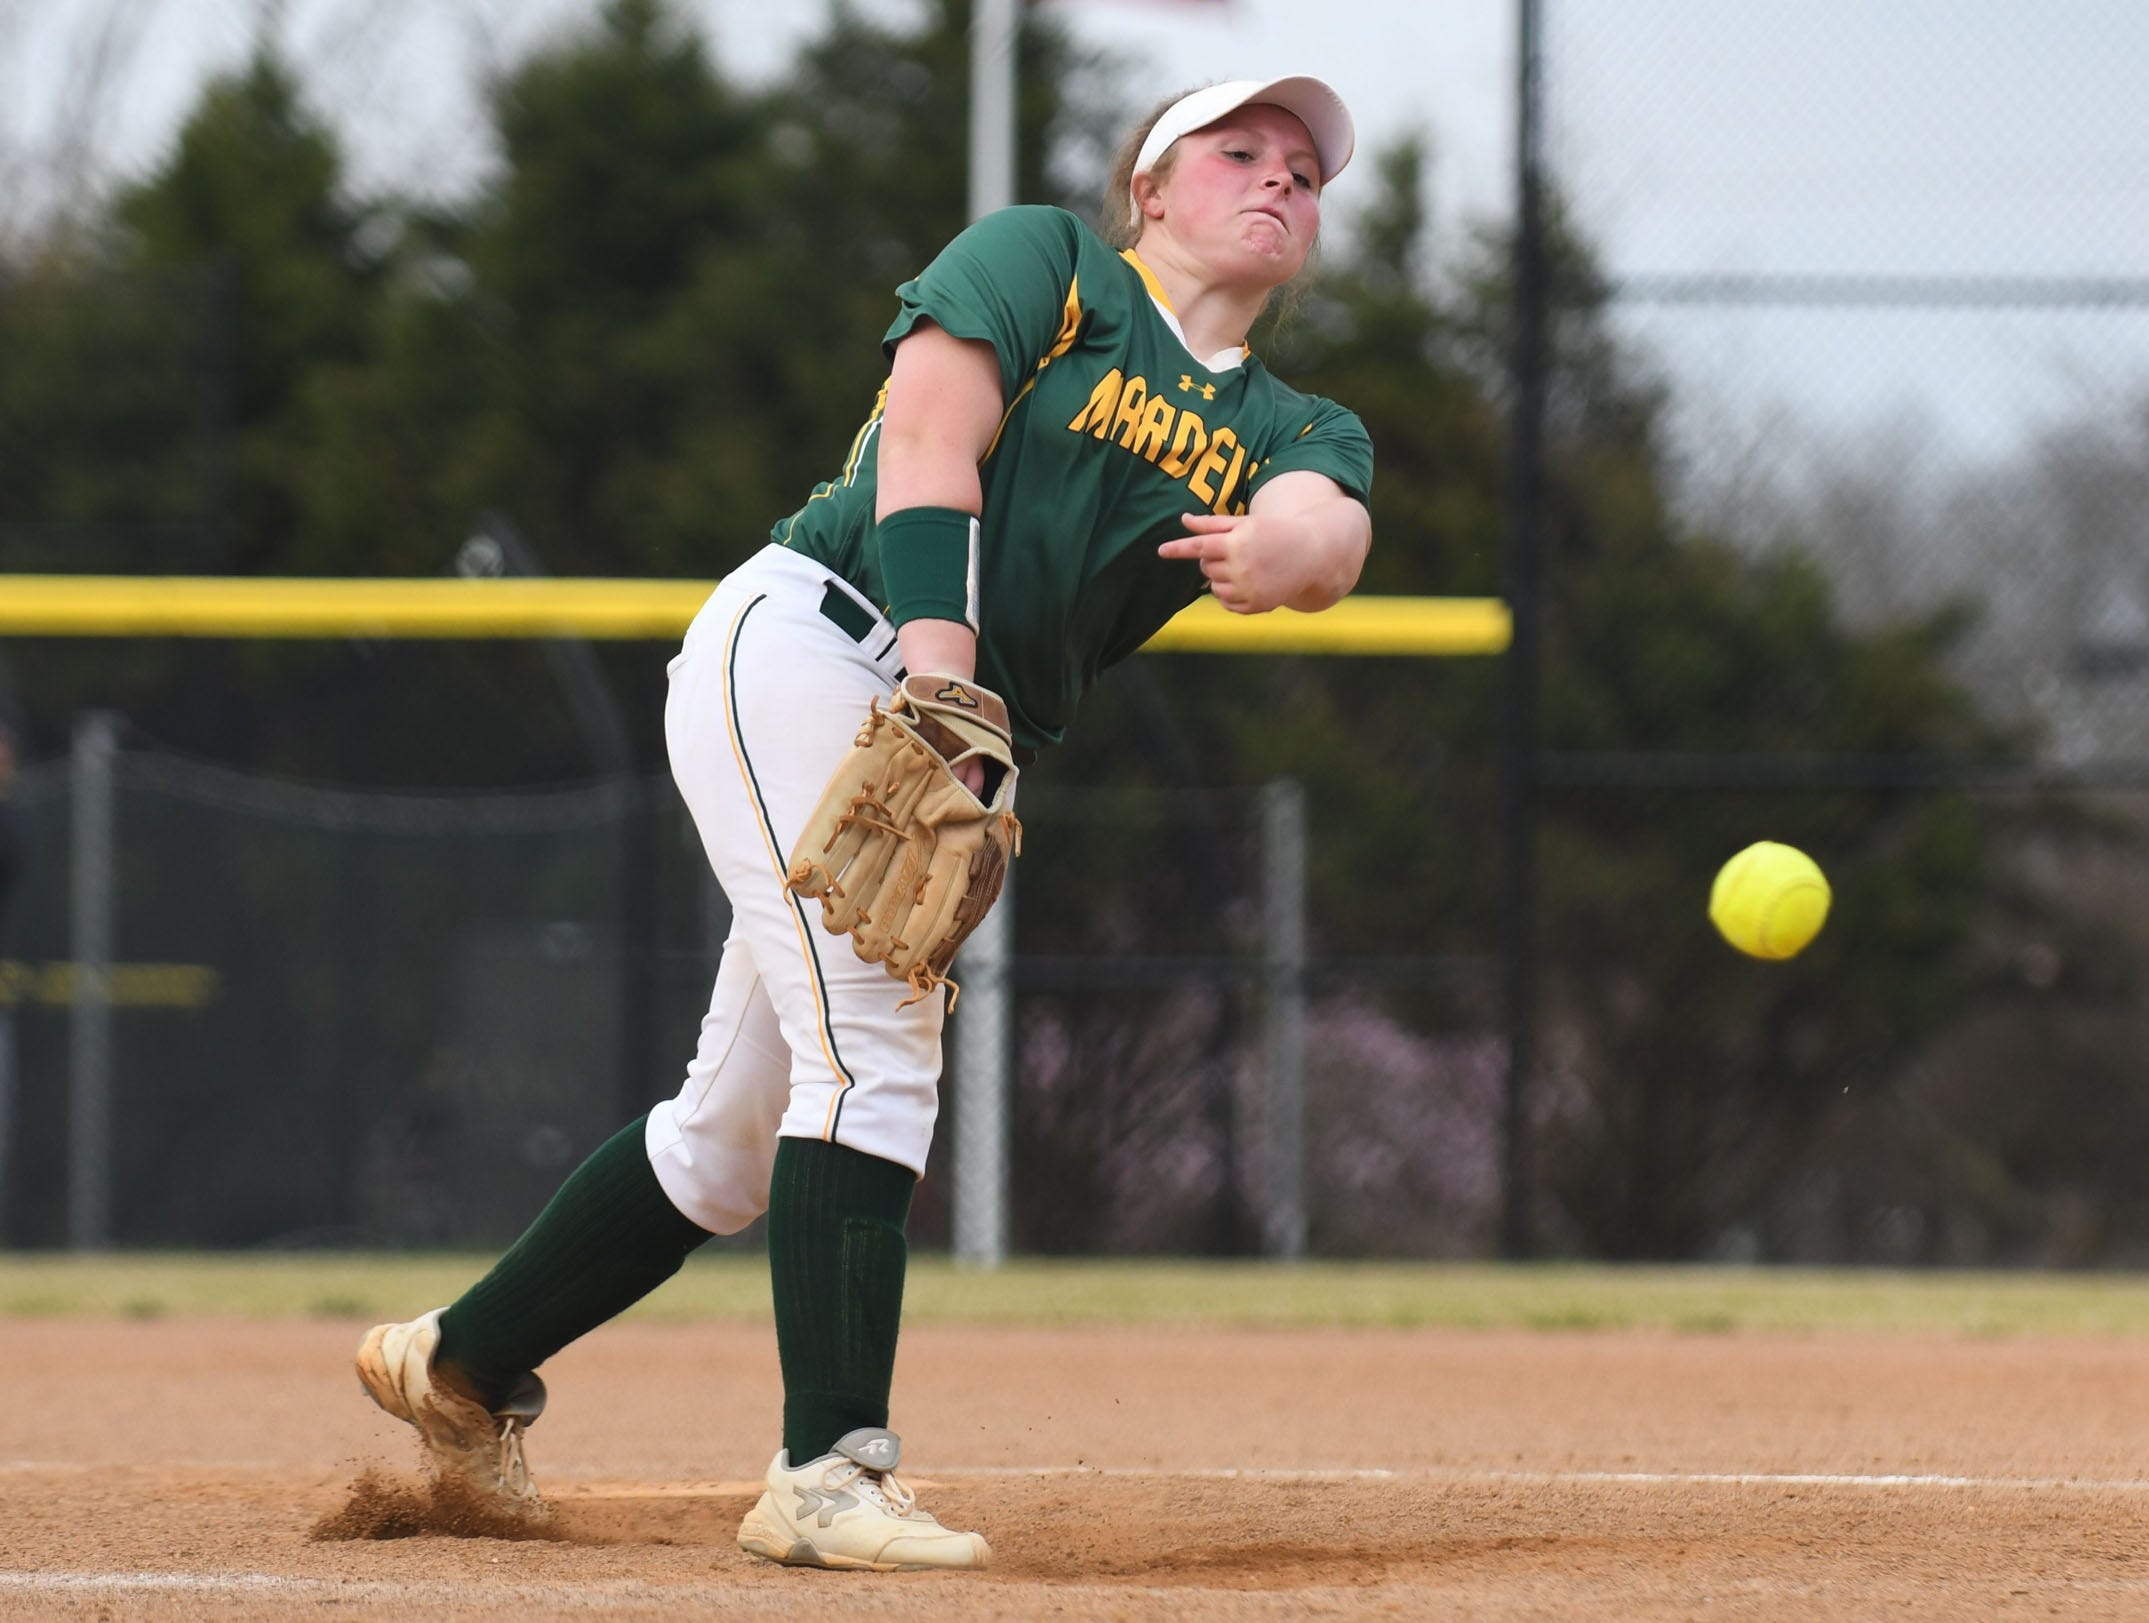 Mardela's Grace Barnes on the mound against Snow Hill on Monday, April 8, 2019 in Snow Hill, Md.